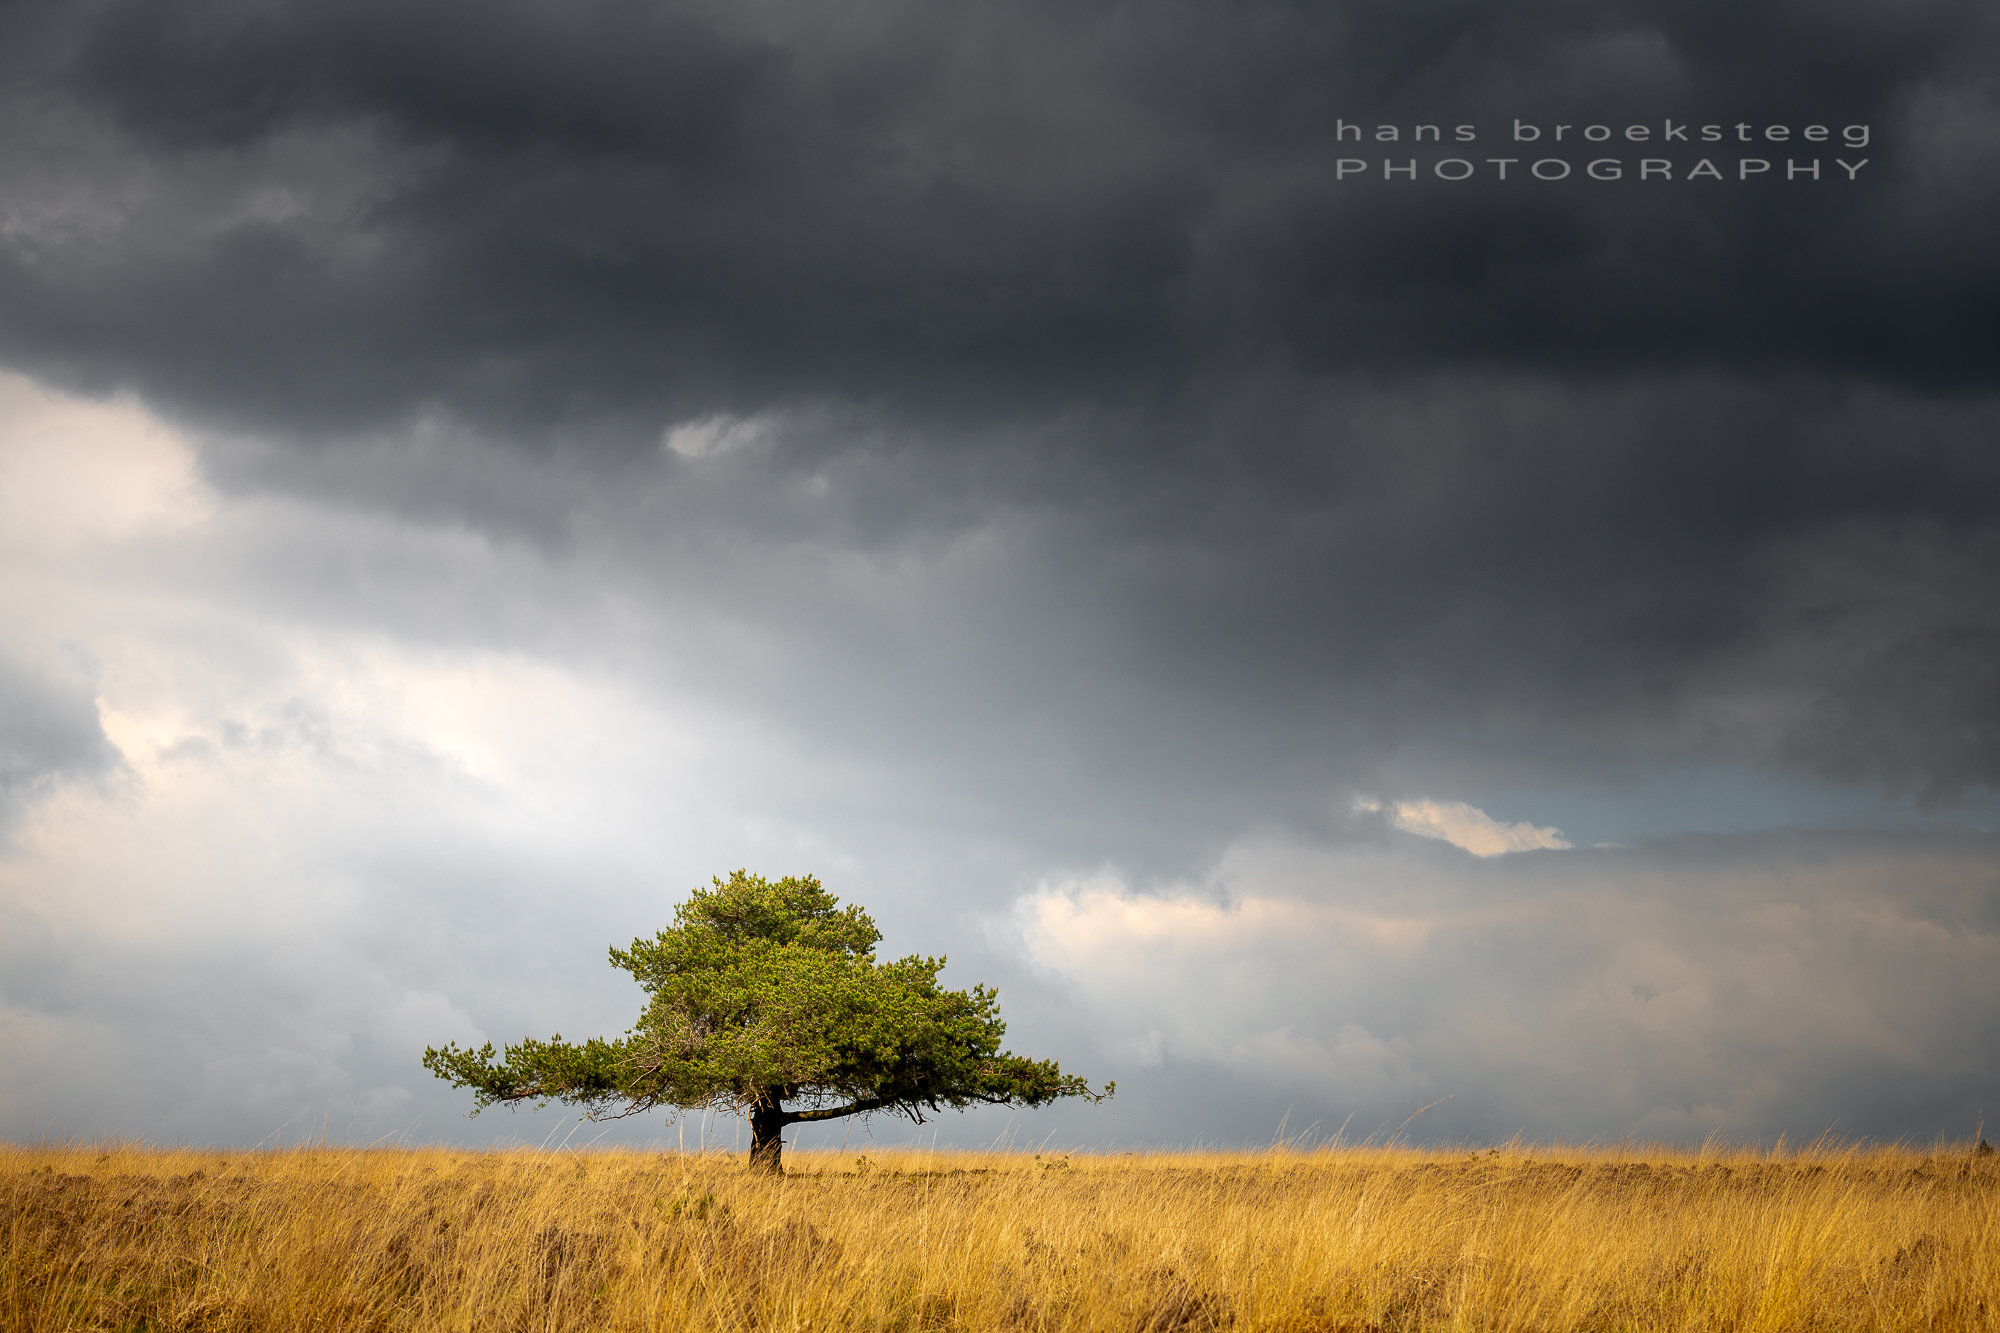 Pine tree, sunlight and clouds